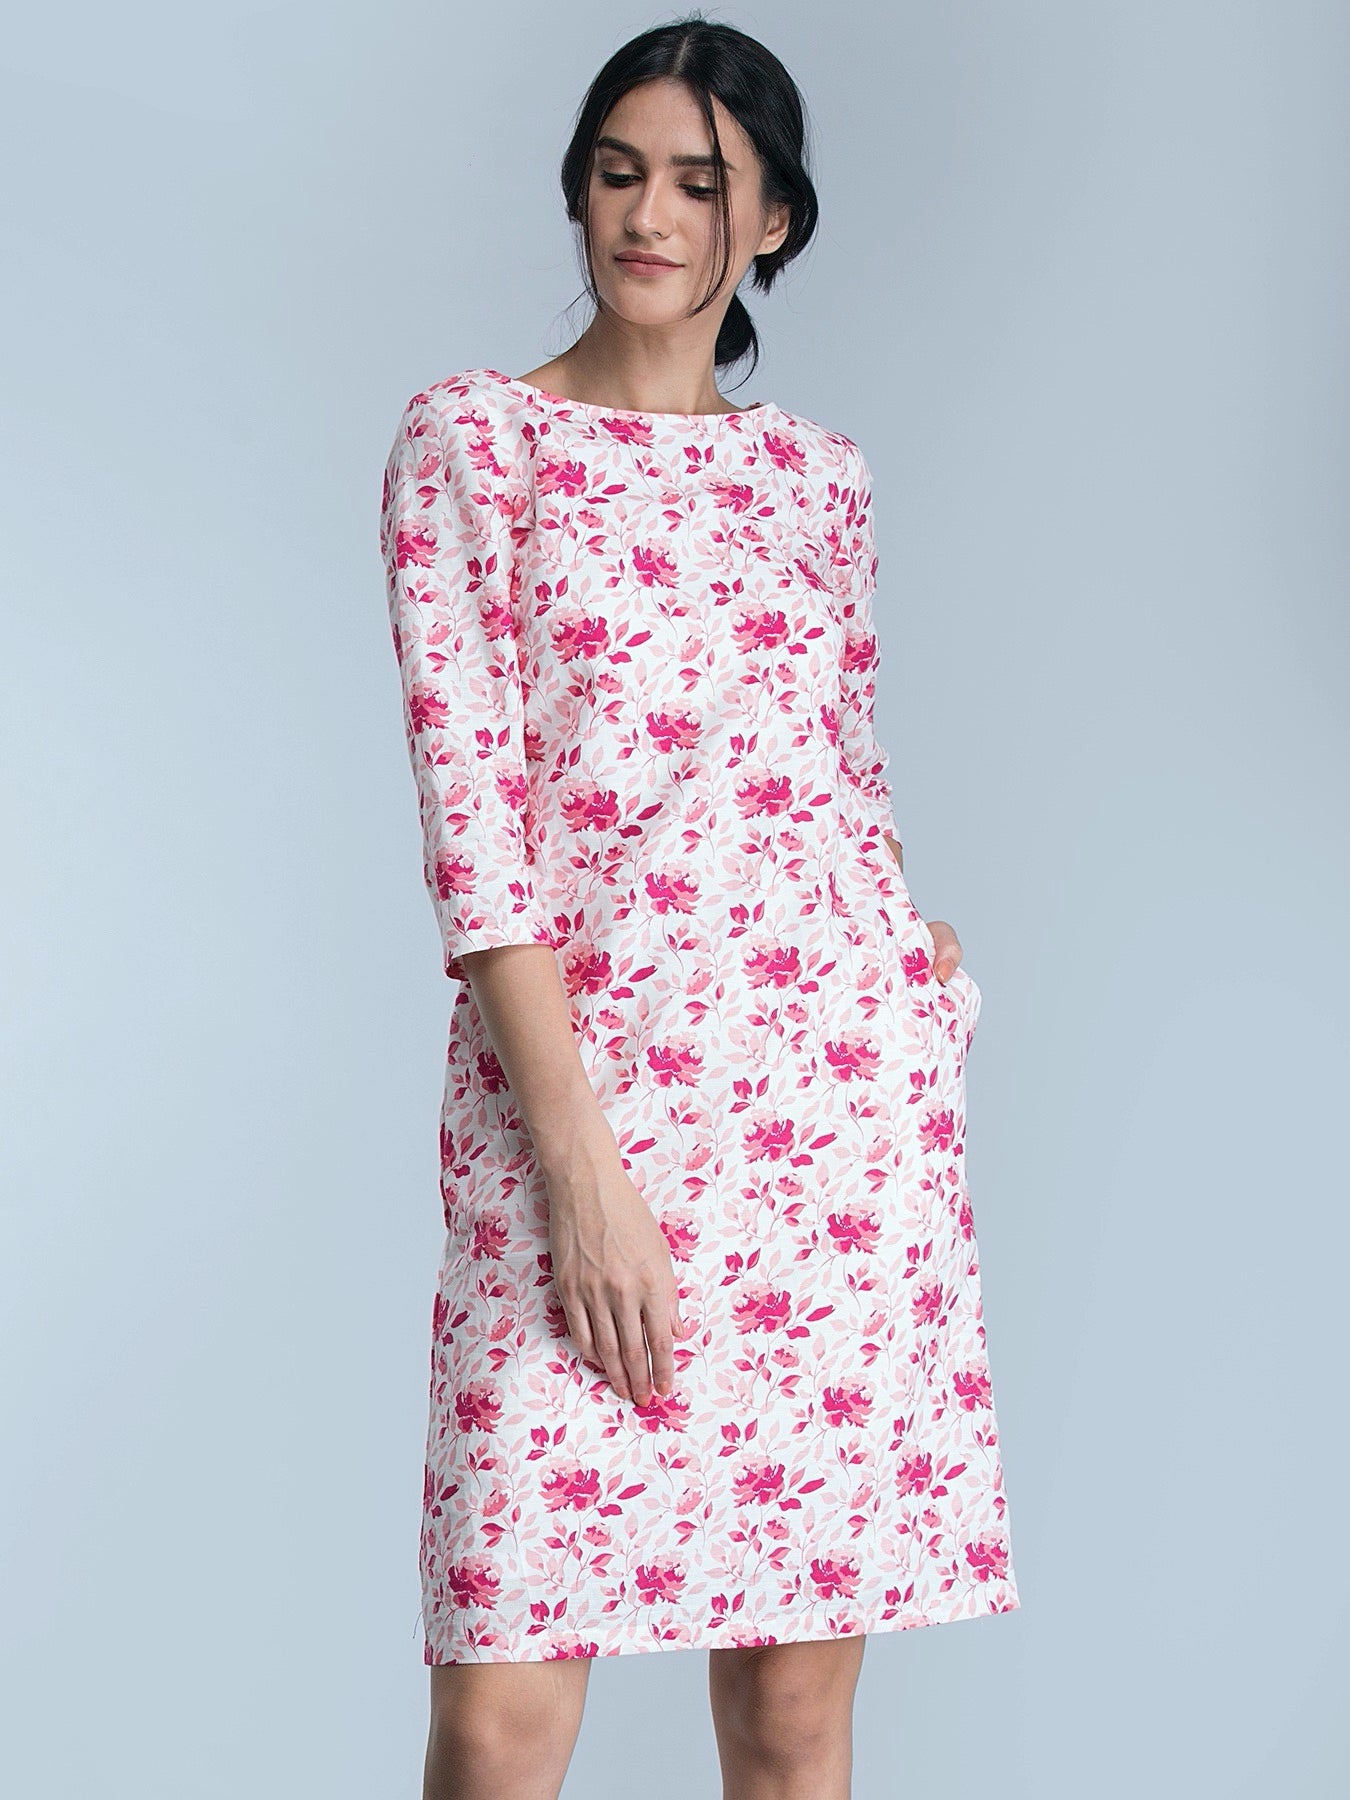 Boat Neck Floral Shift Dress - Pink